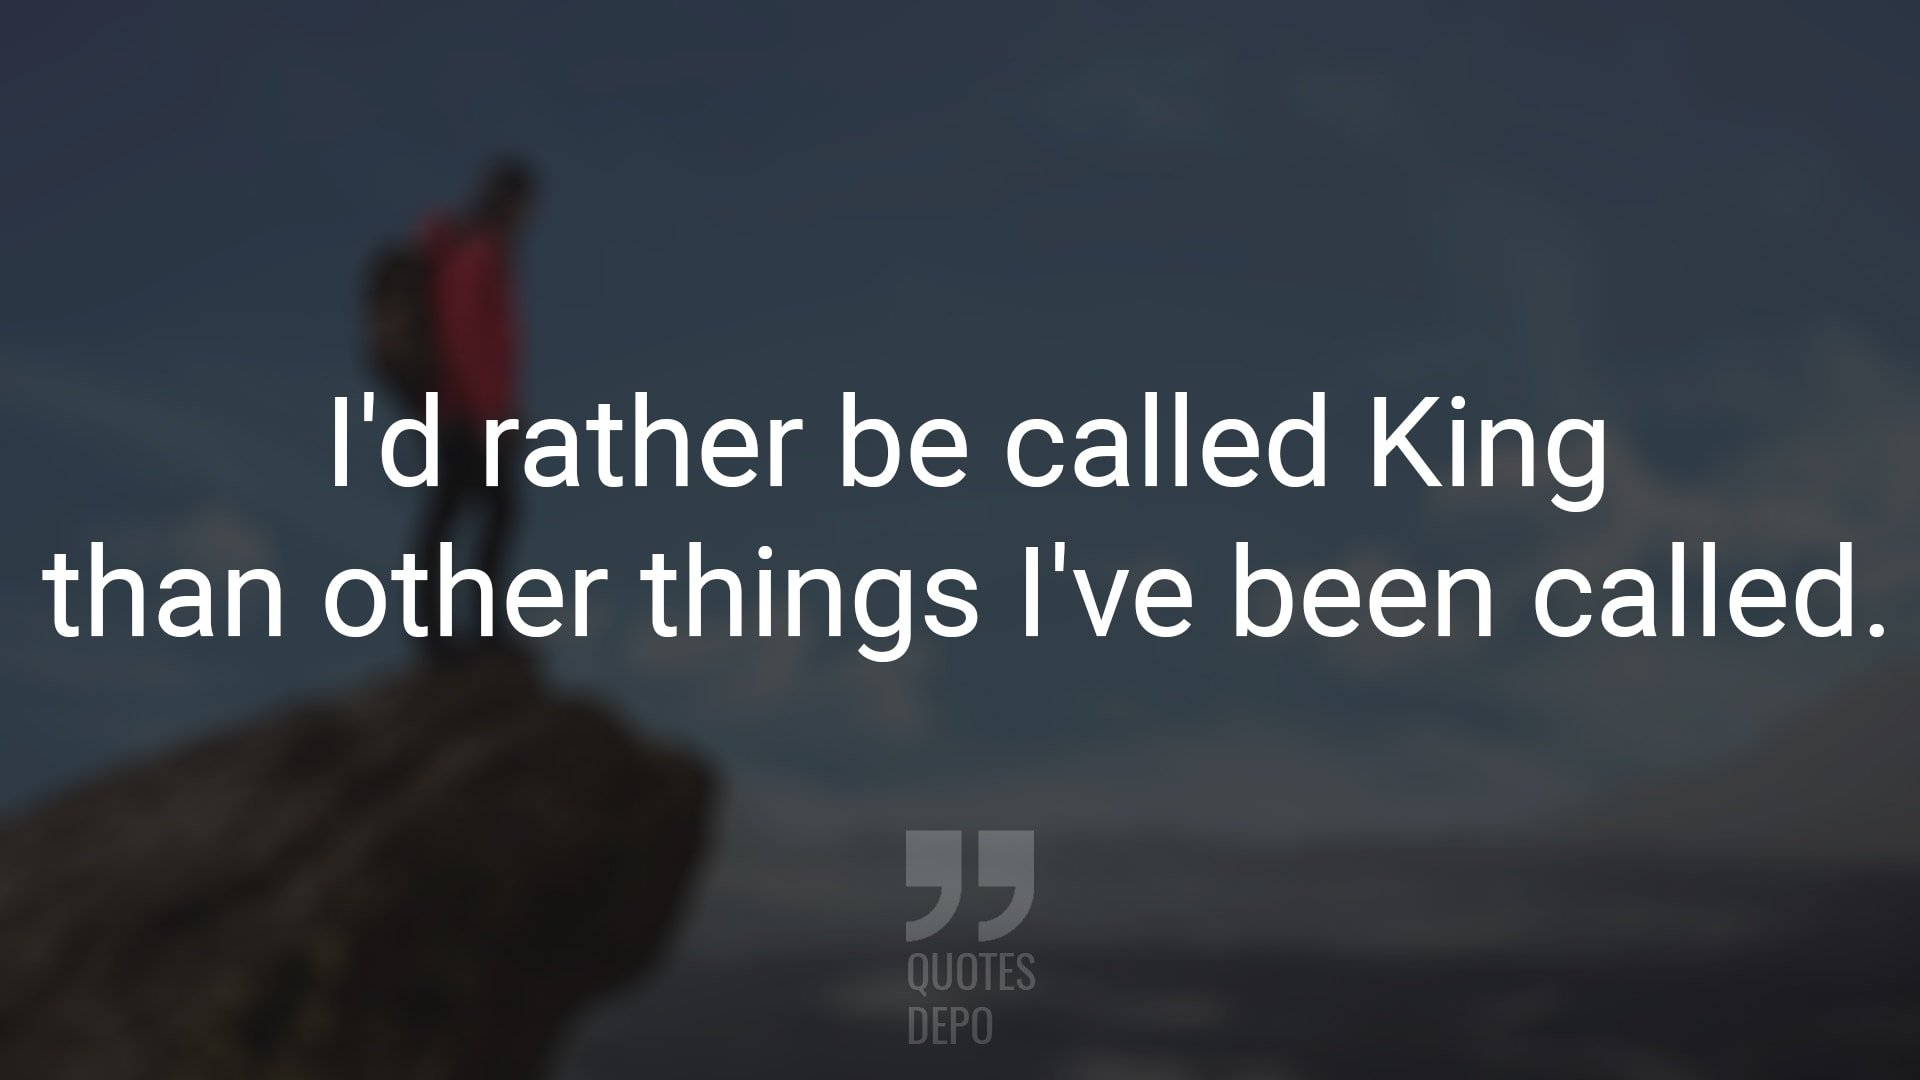 I'd Rather be Called King